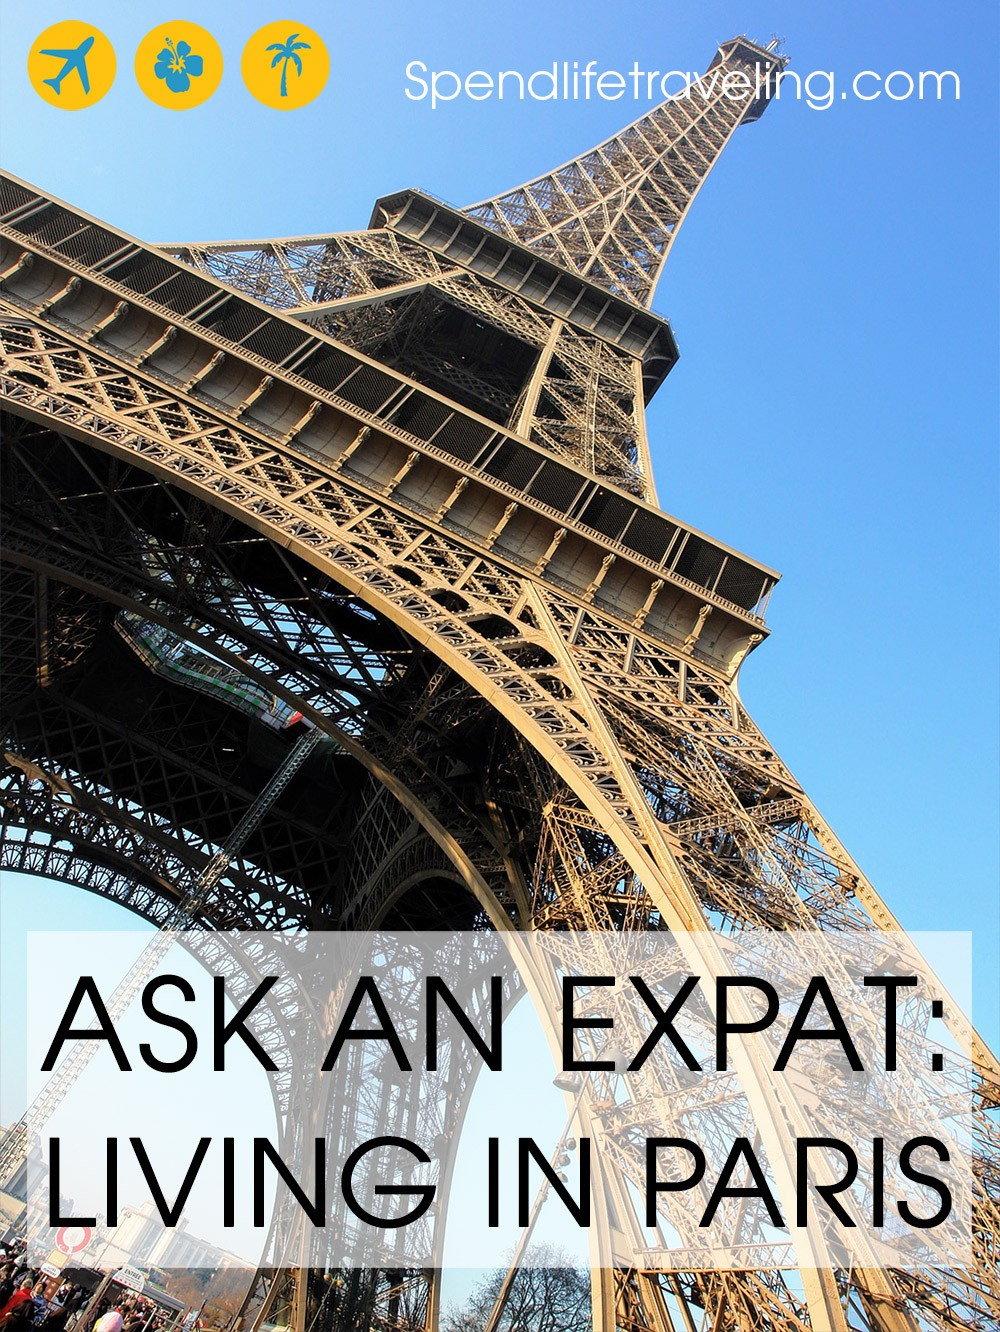 What is life in Paris really like? Interview with an expat about moving to and living in Paris.